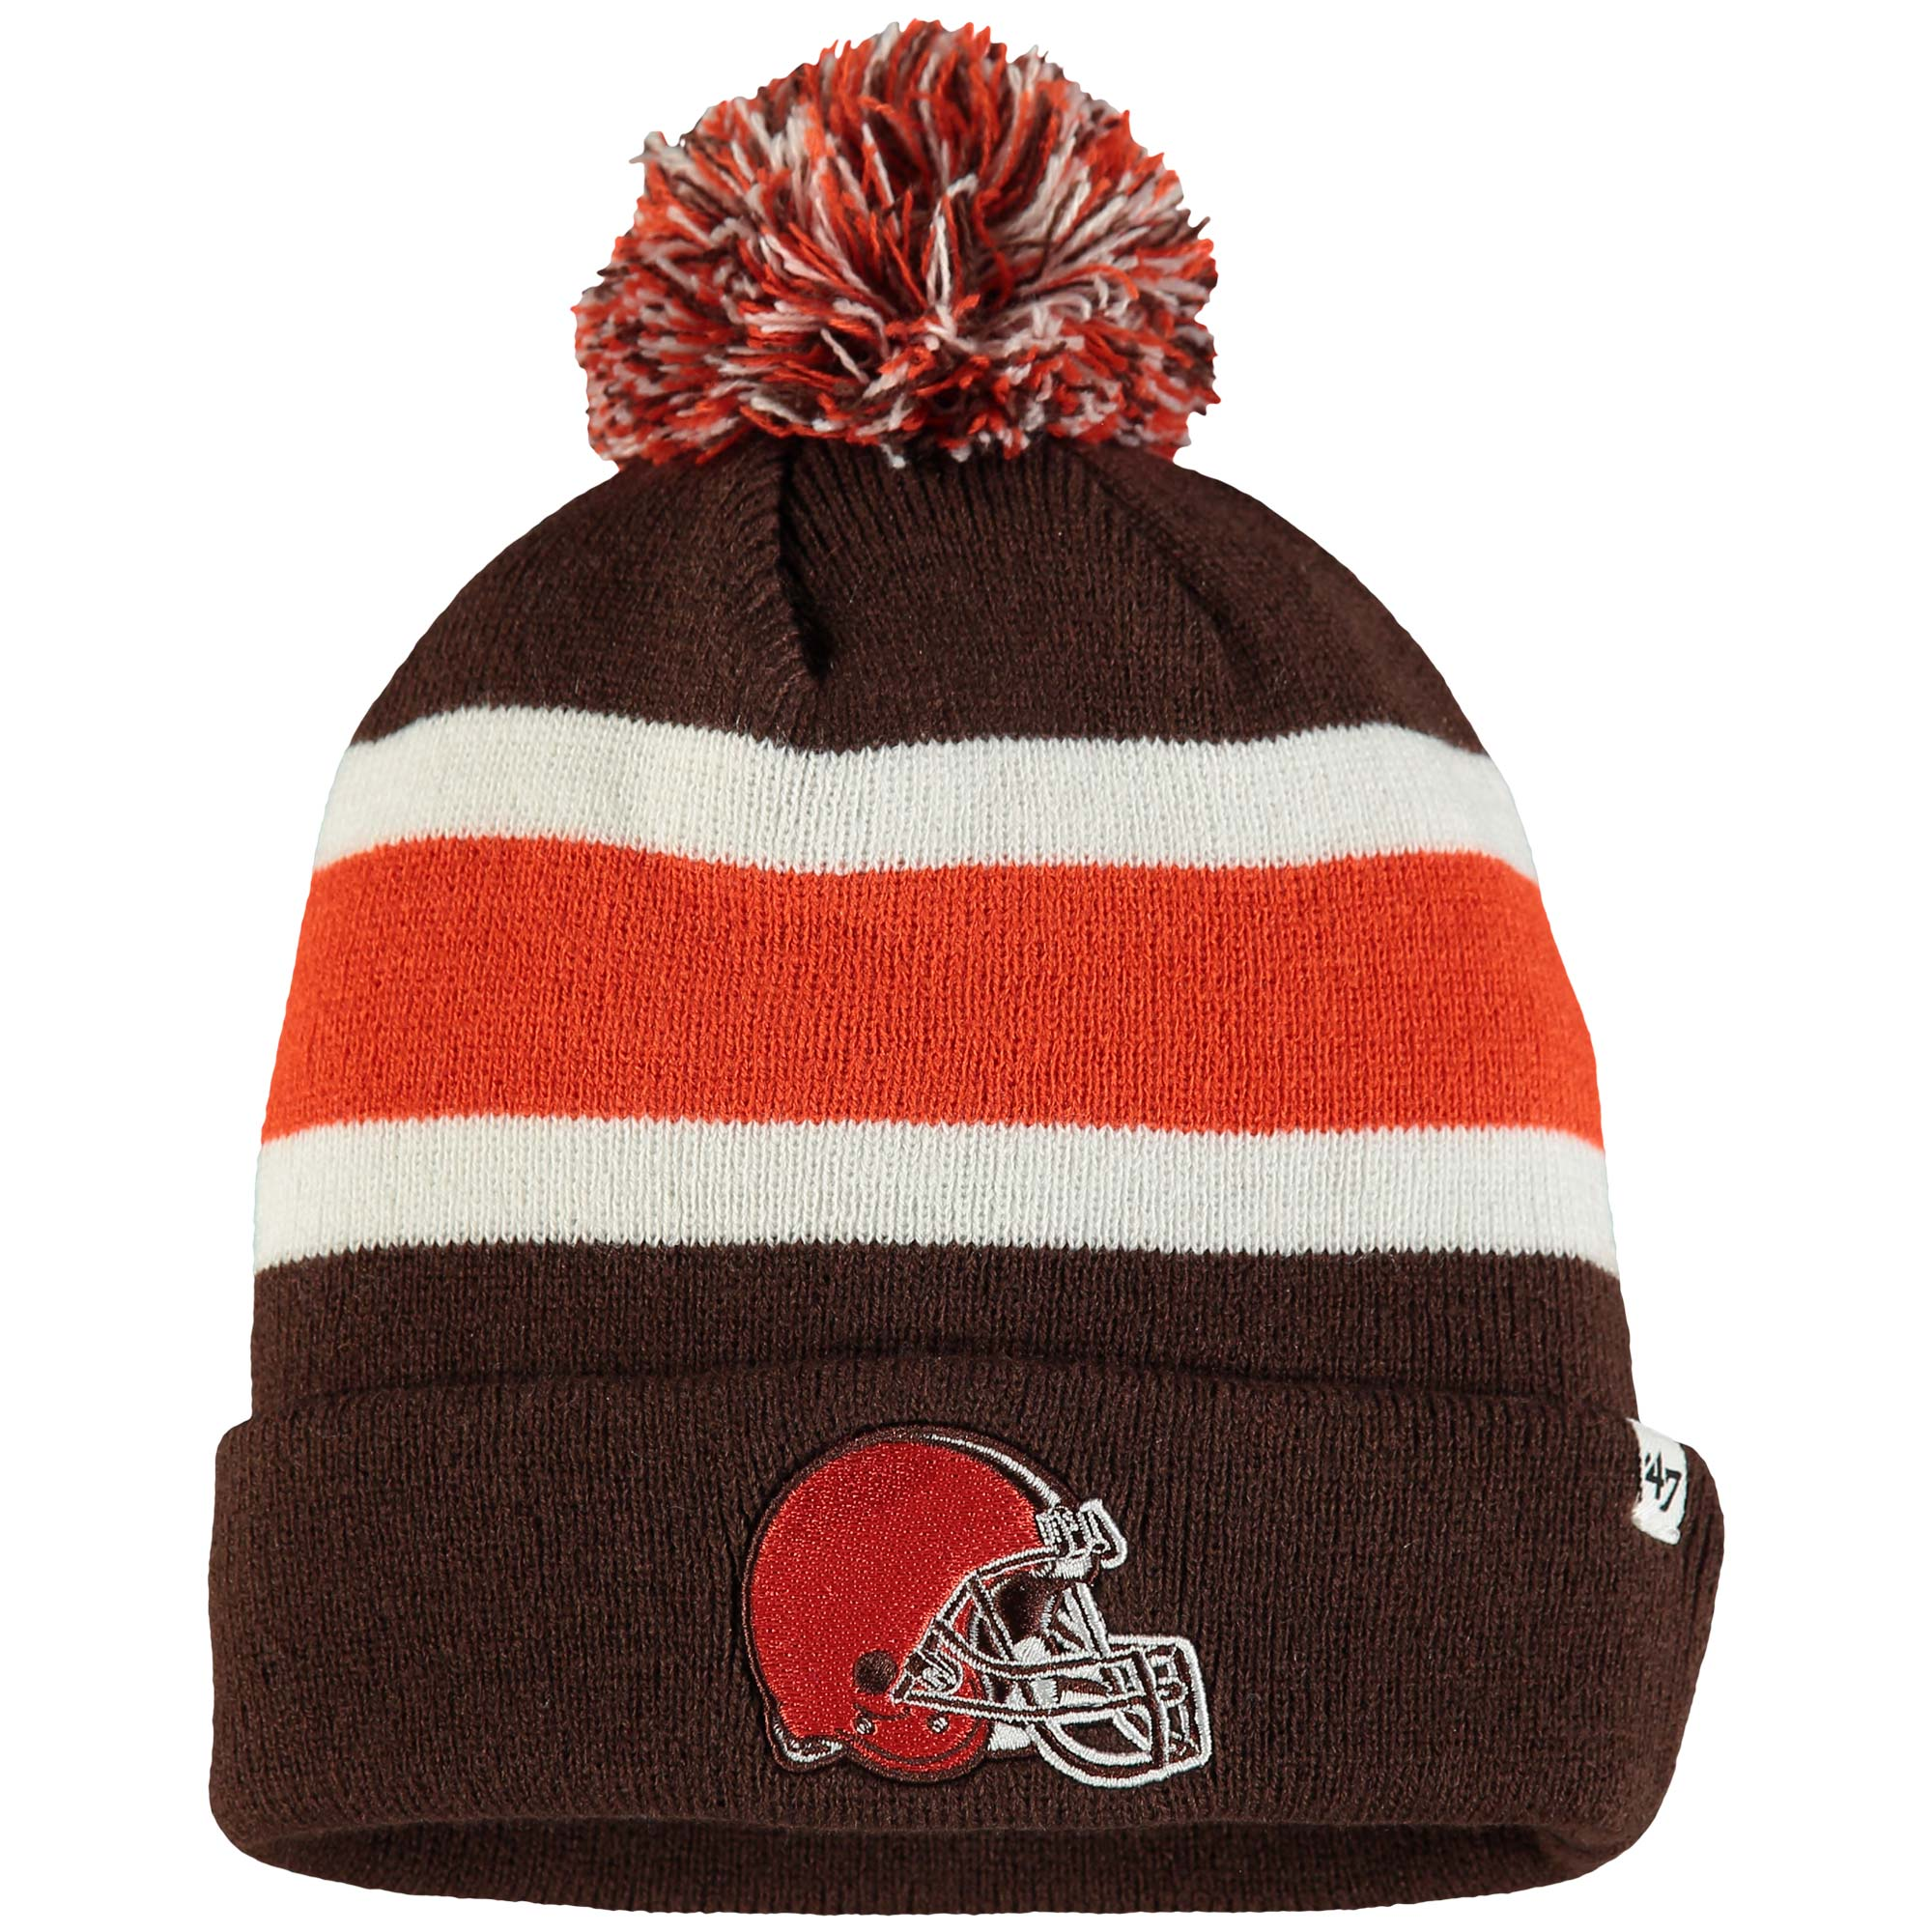 Cleveland Browns '47 Breakaway Cuffed Knit Hat with Pom - Brown